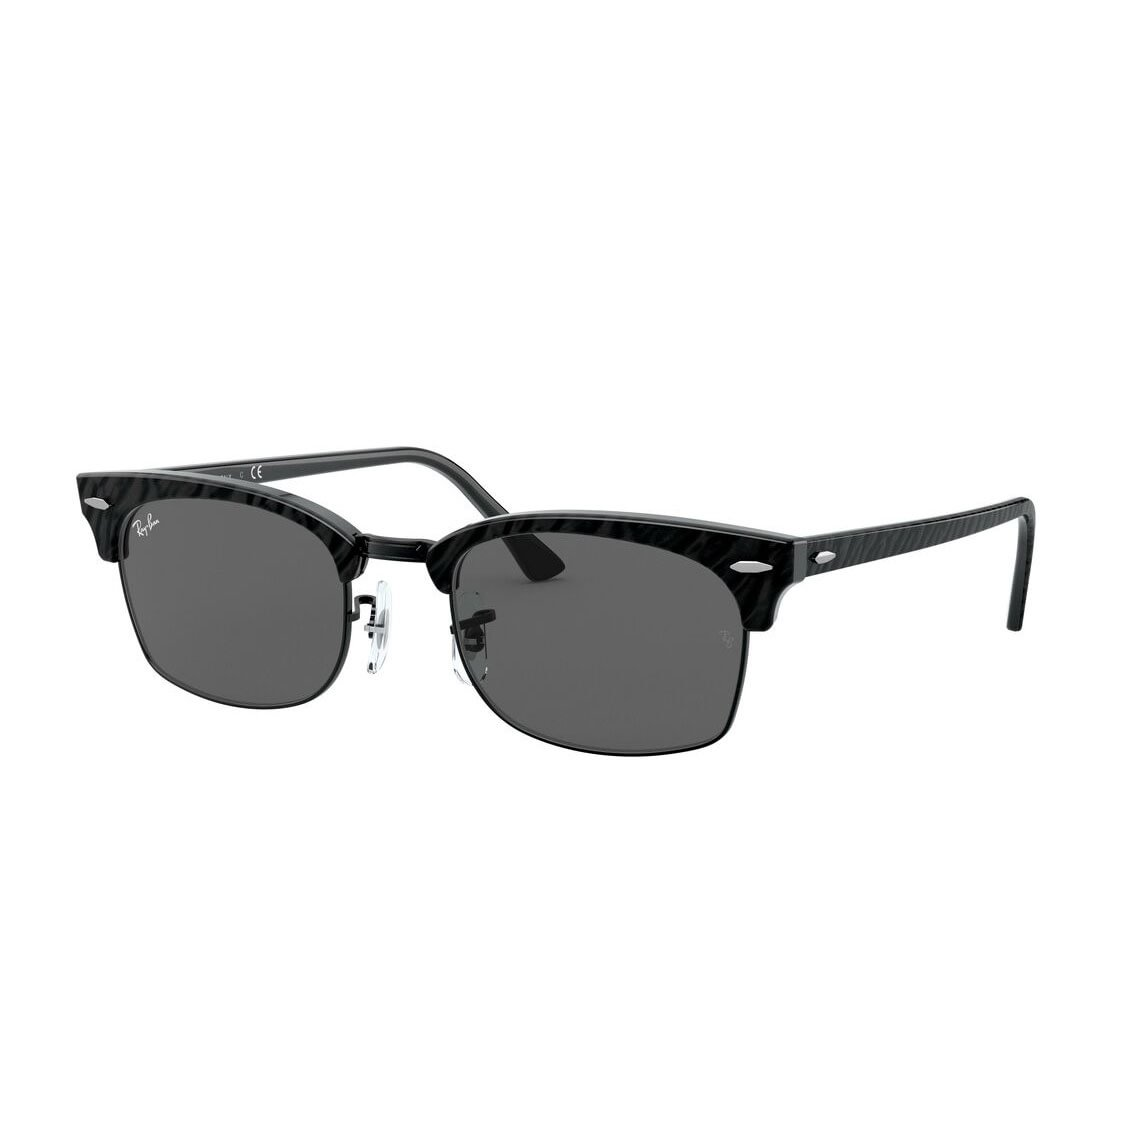 Ray-Ban Clubmaster Square RB3916 1305B1 5221